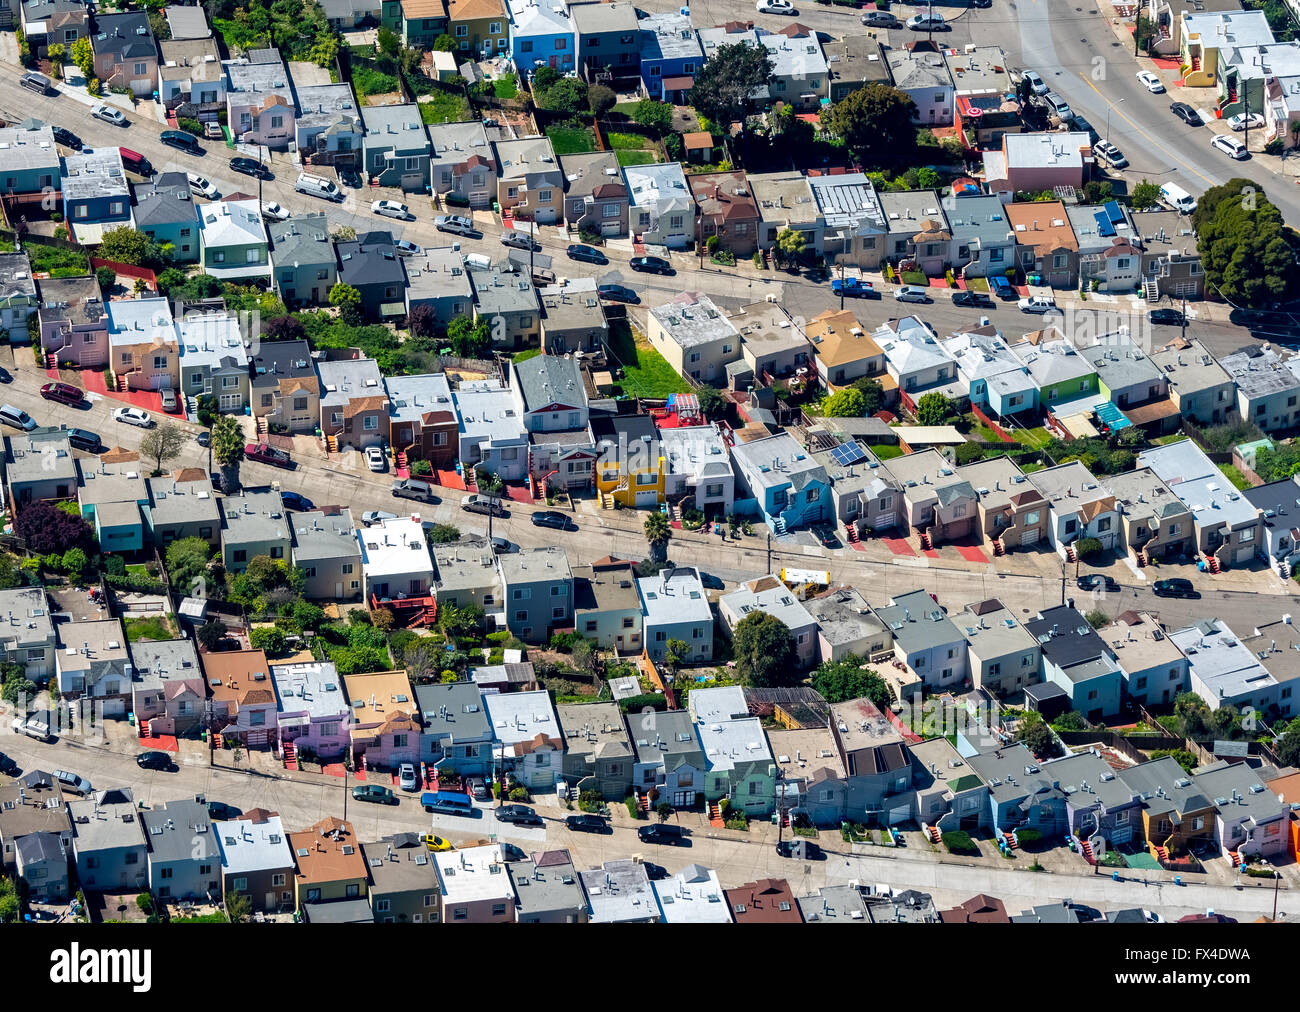 Aerial view, typical American residential area on the